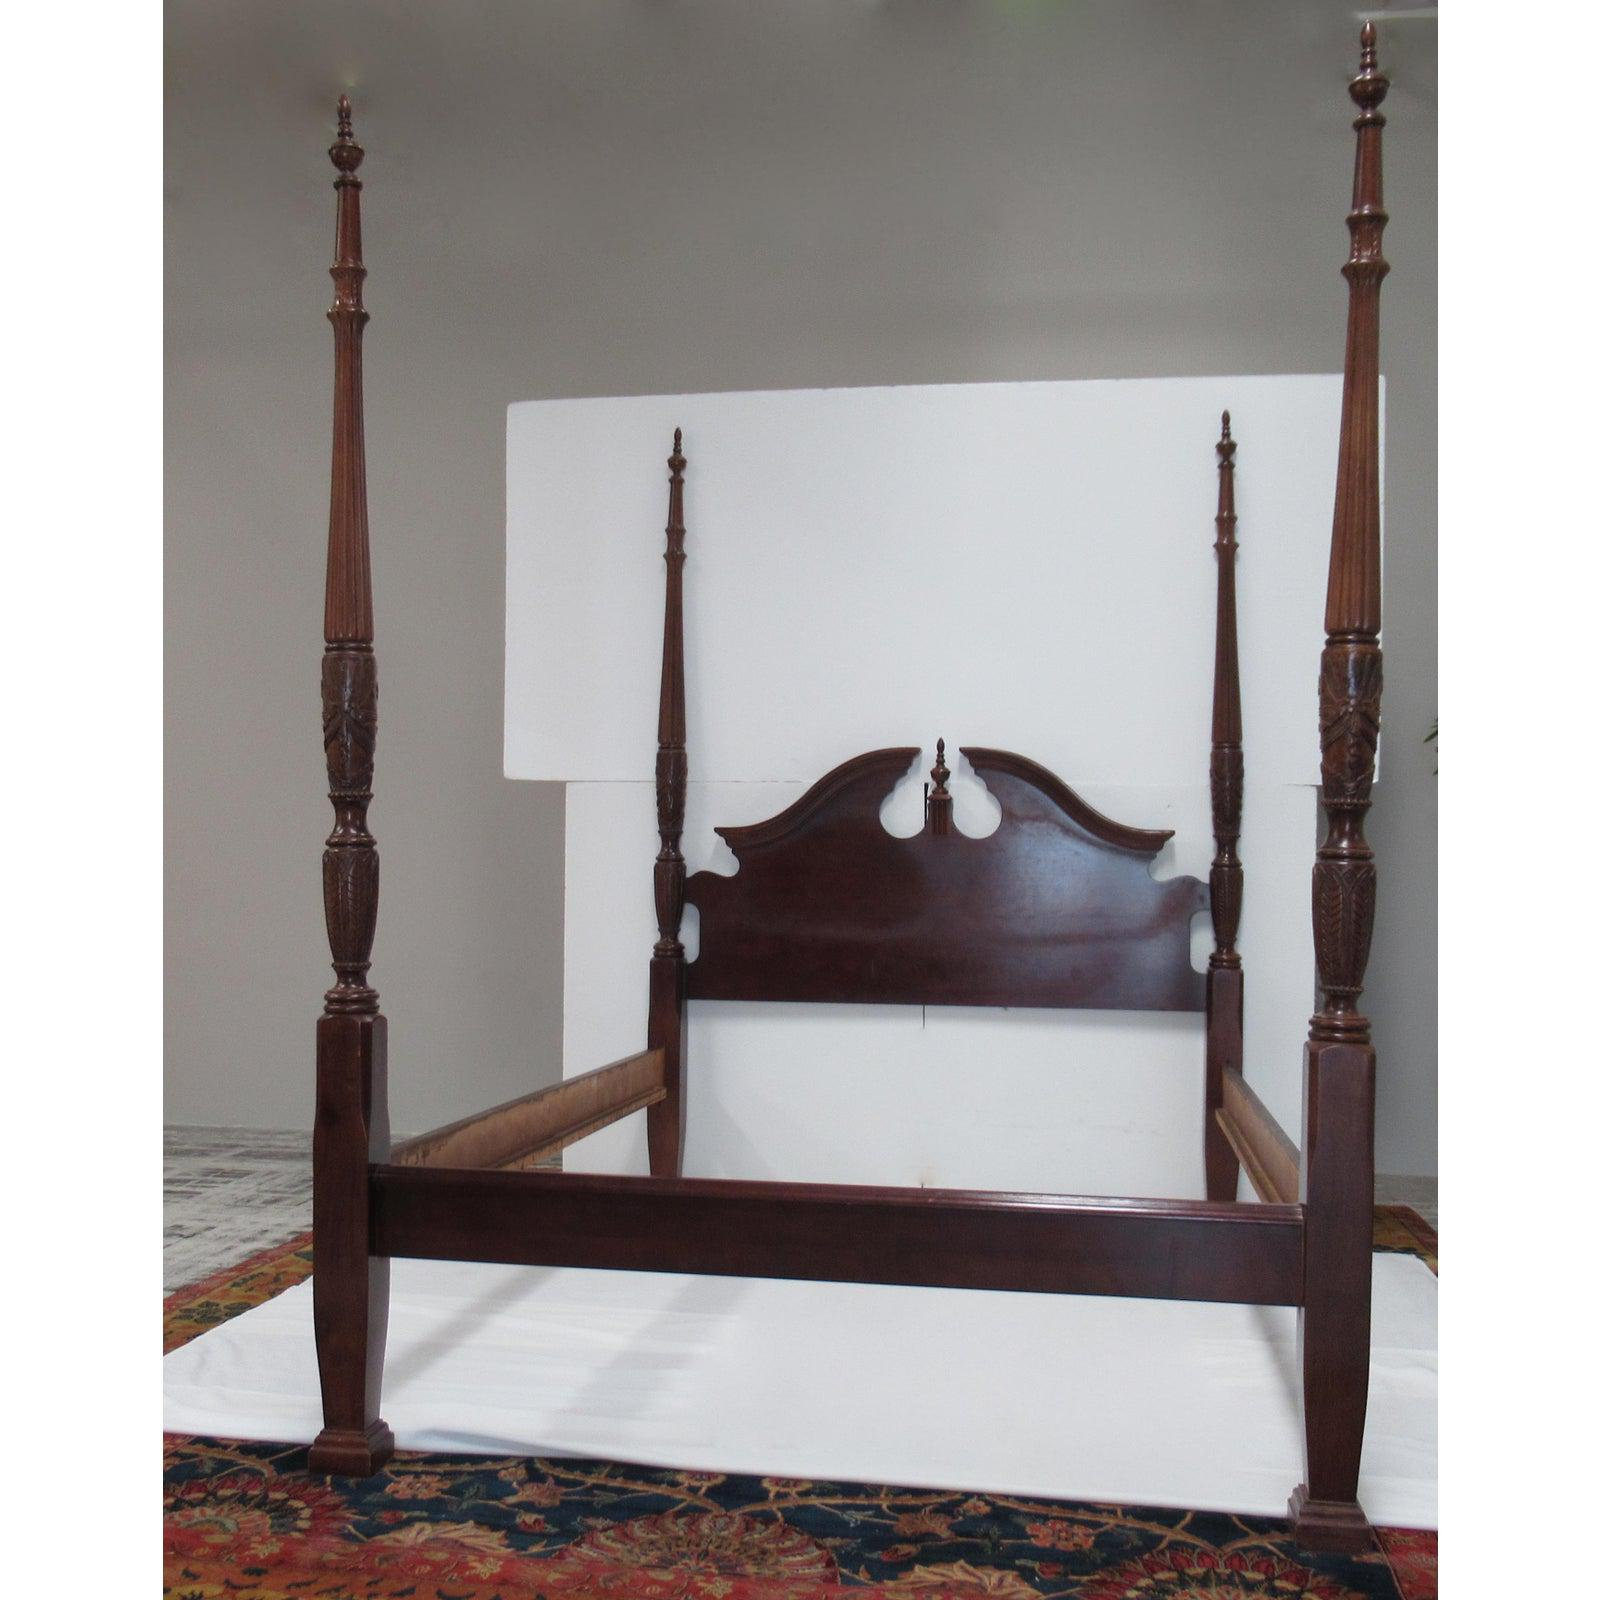 1980s vintage colonial style rice carved 4 poster bed attr to henkel harris queen size